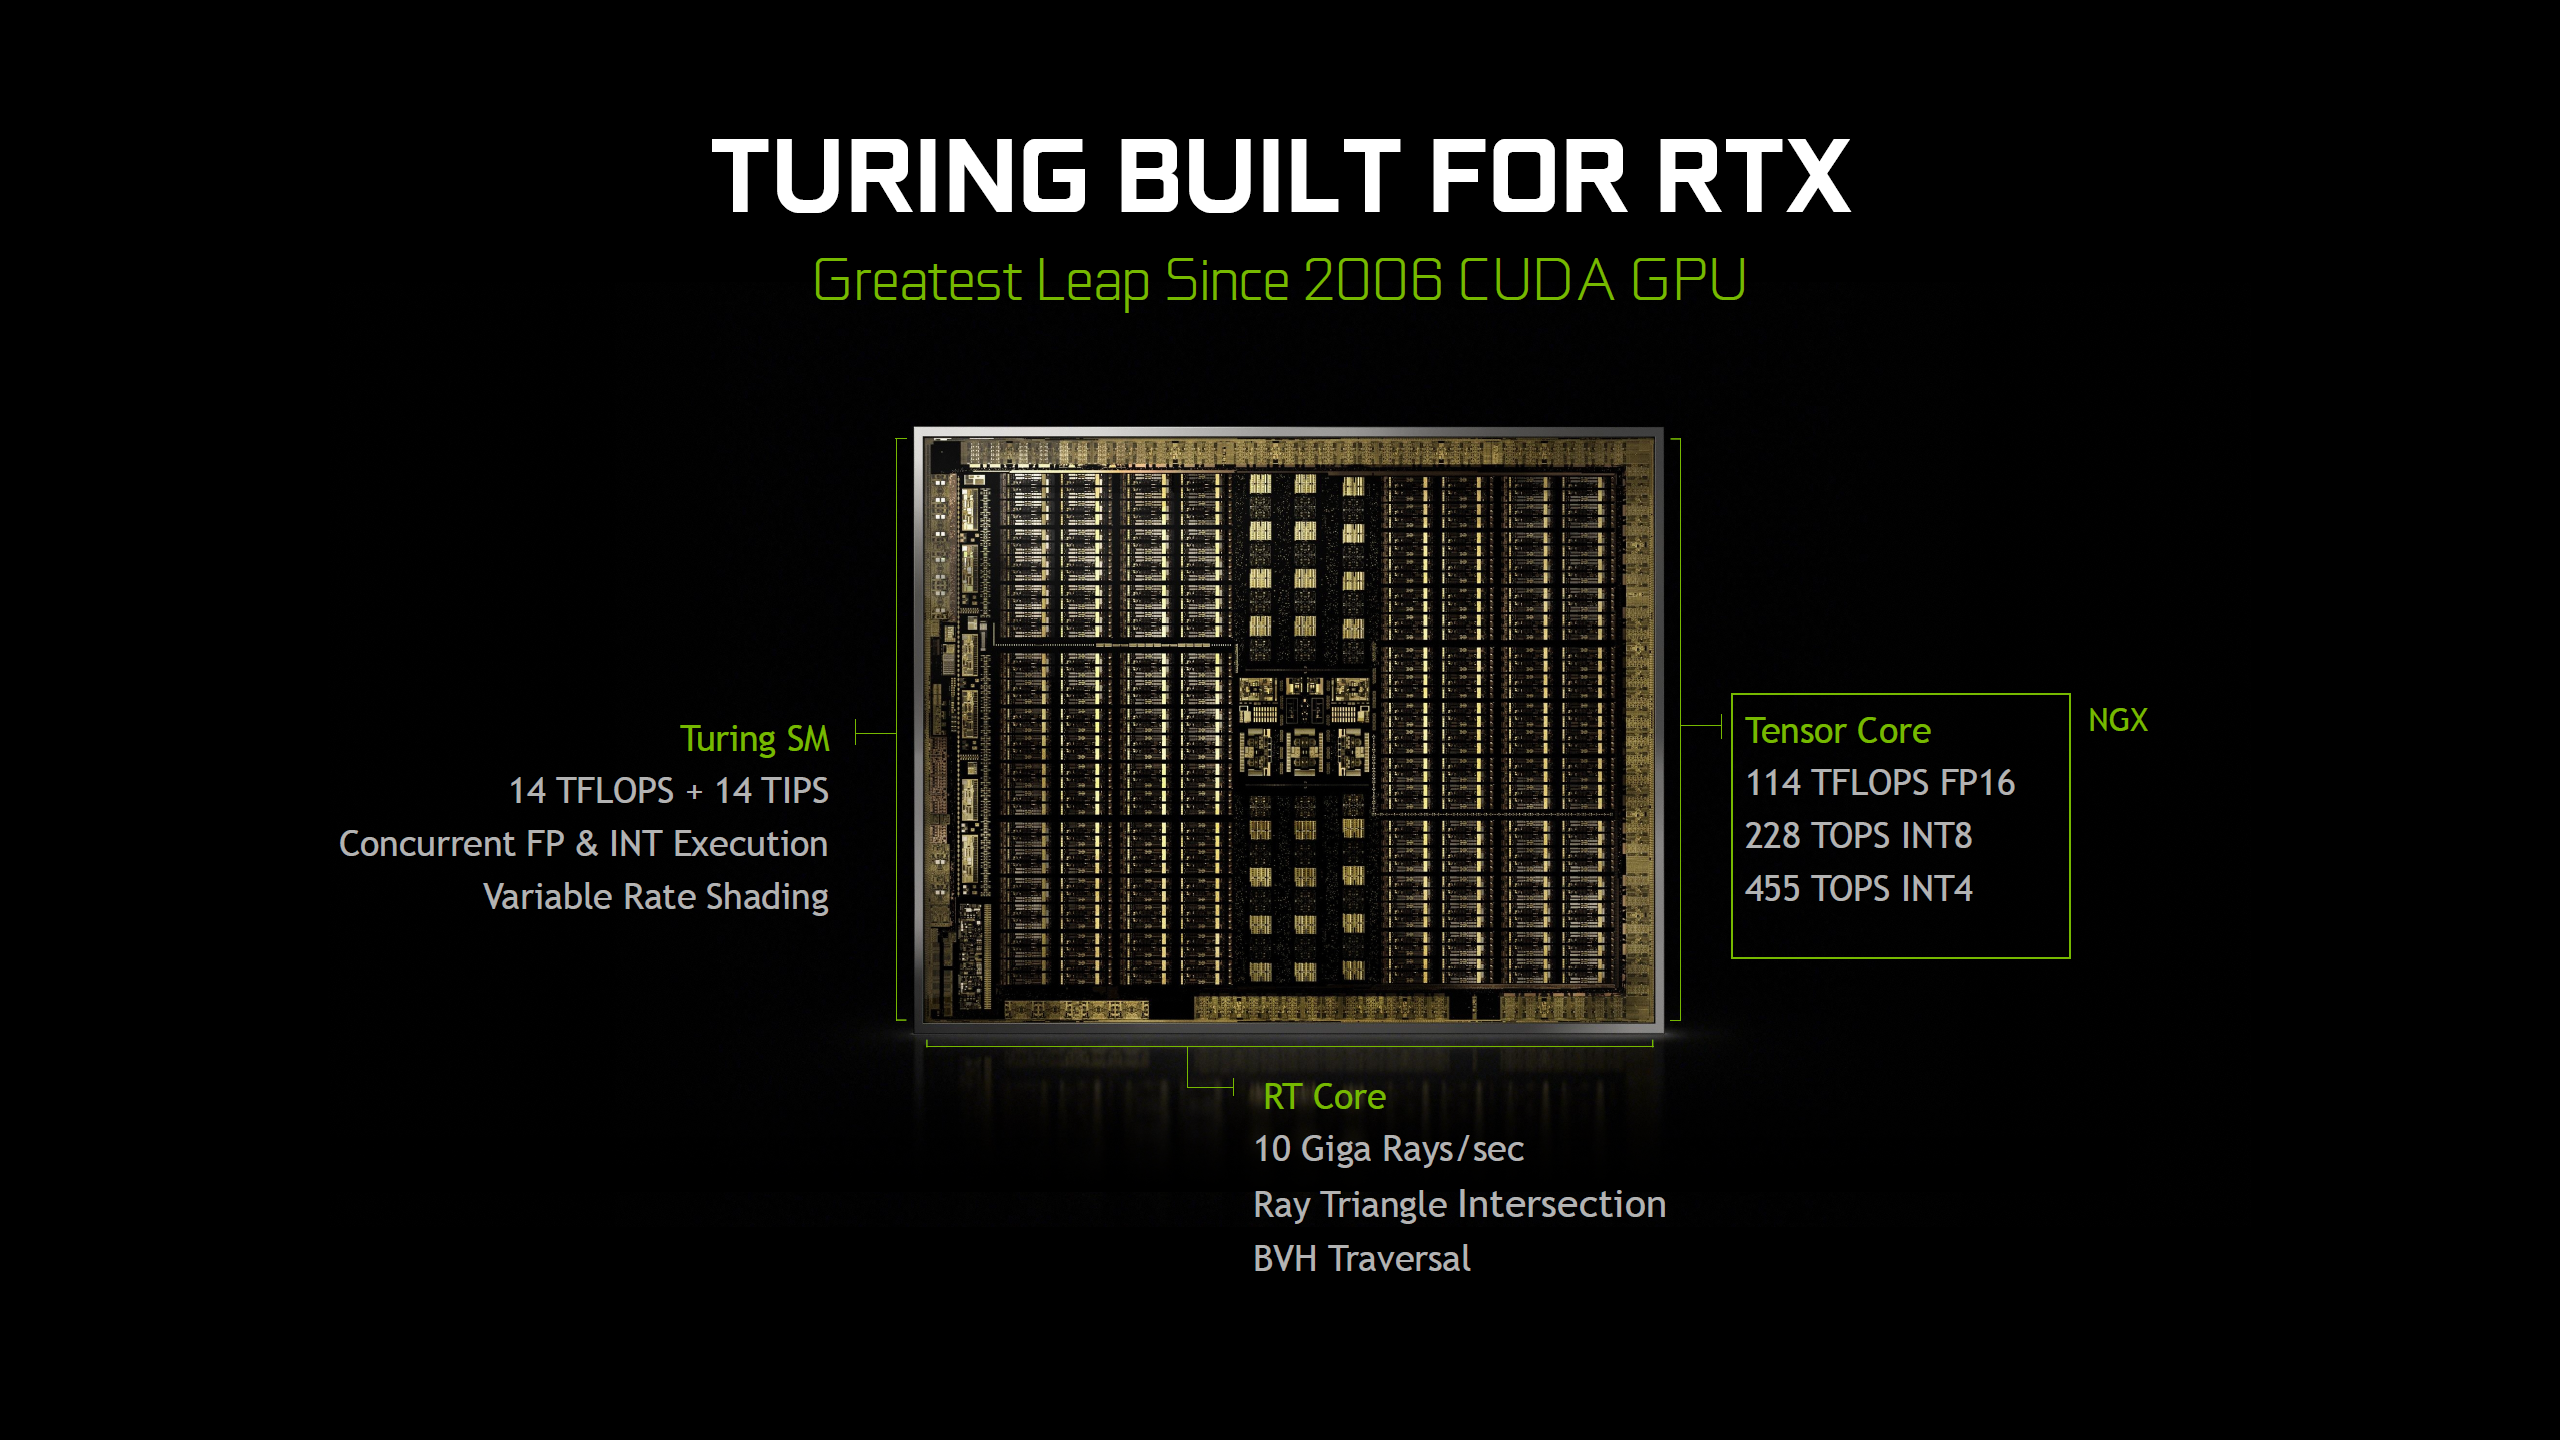 NVIDIA Readies Quadro RTX Mobility GPUs With Turing Architecture